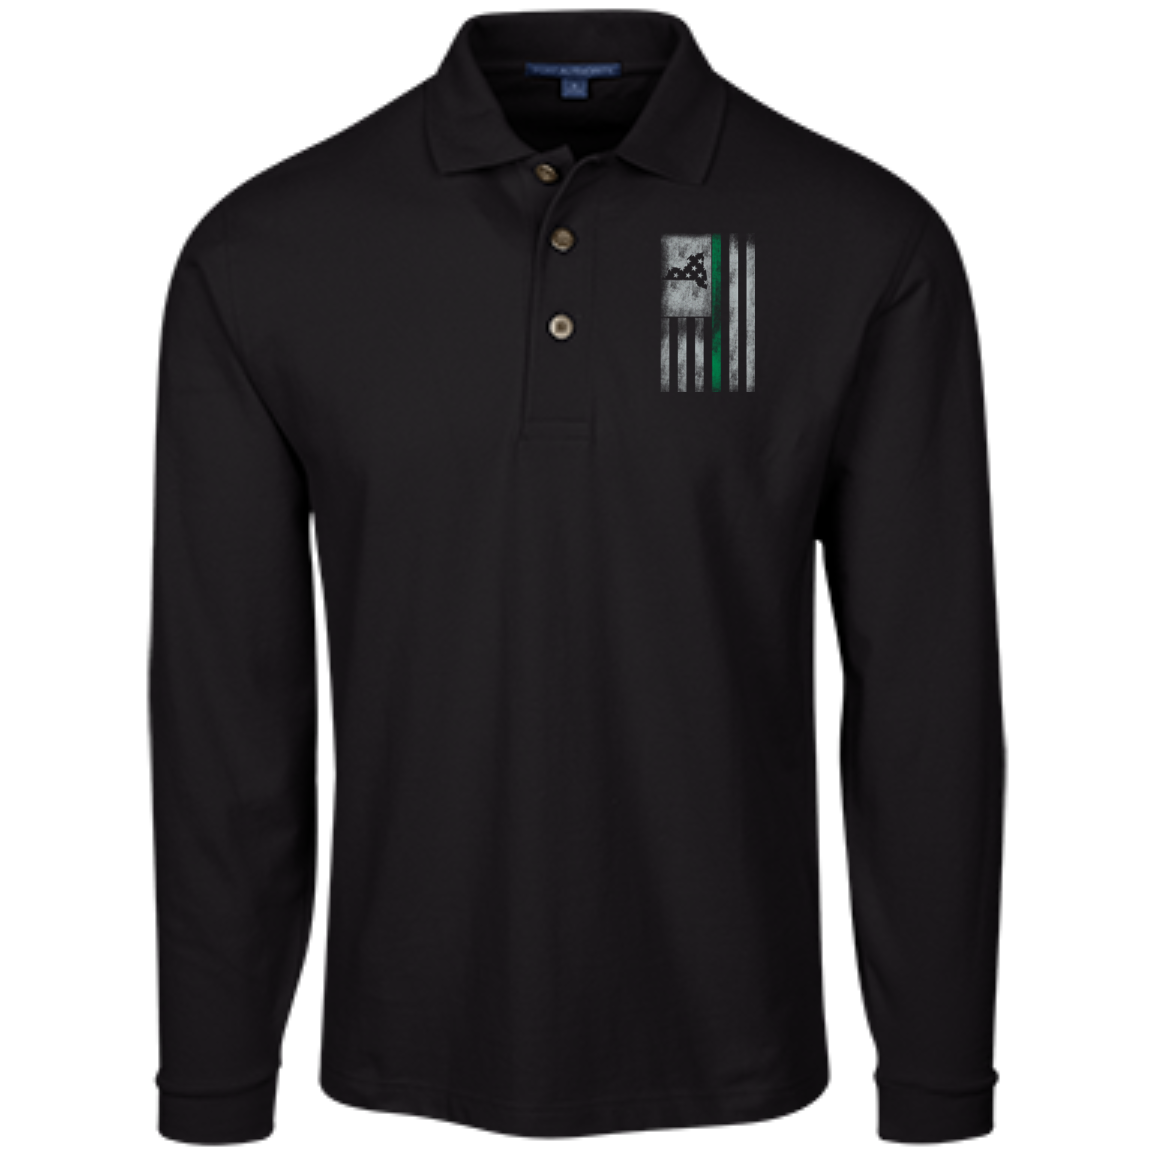 New York Thin Green Line - Long Sleeve Pique Knit Polo